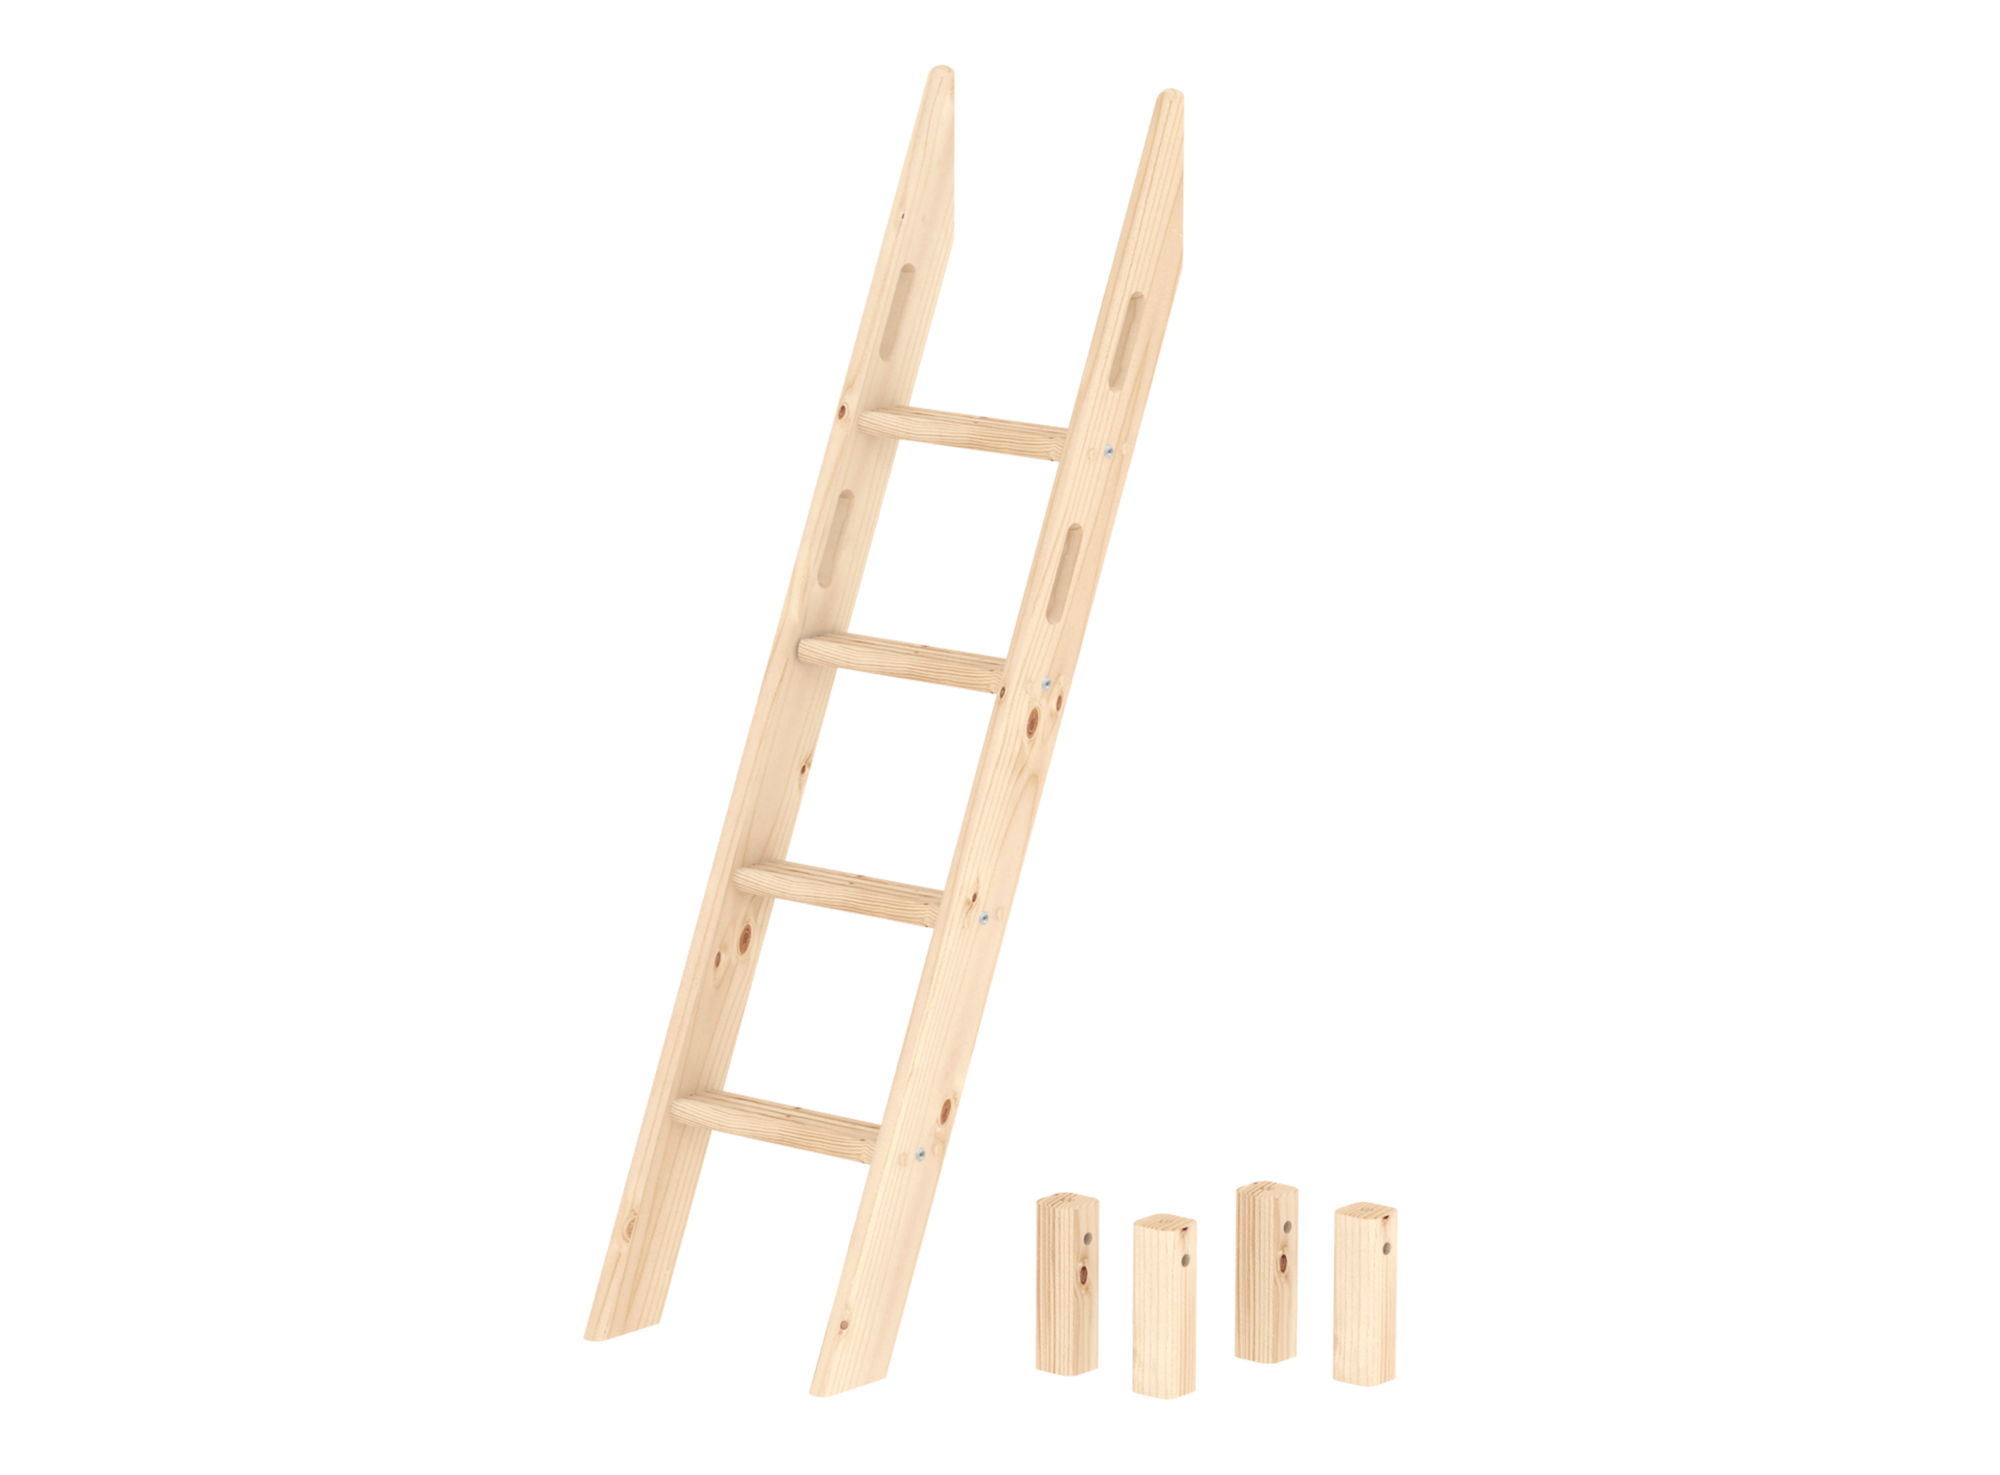 Echelle inclinee 4 barreaux pour lit sureleve ht 143 cm ou lit en dec ...